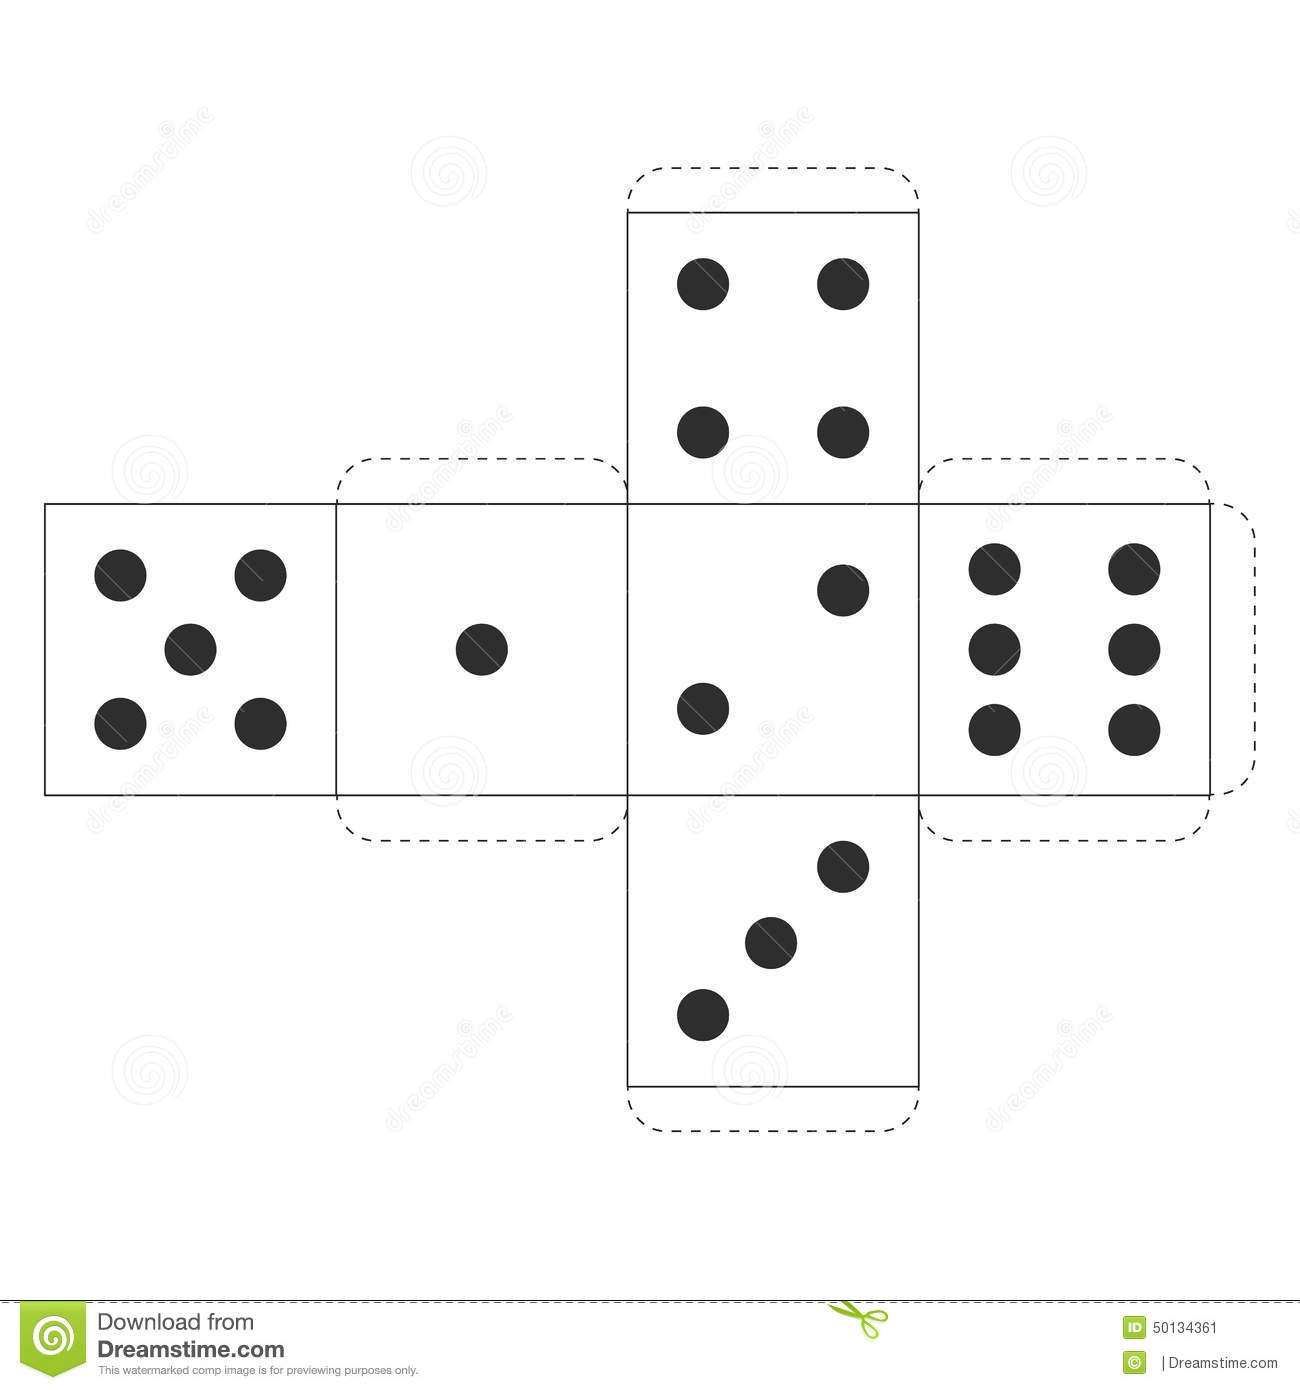 Printable Casino Dice Template, Vector Illustration for Your Projects.